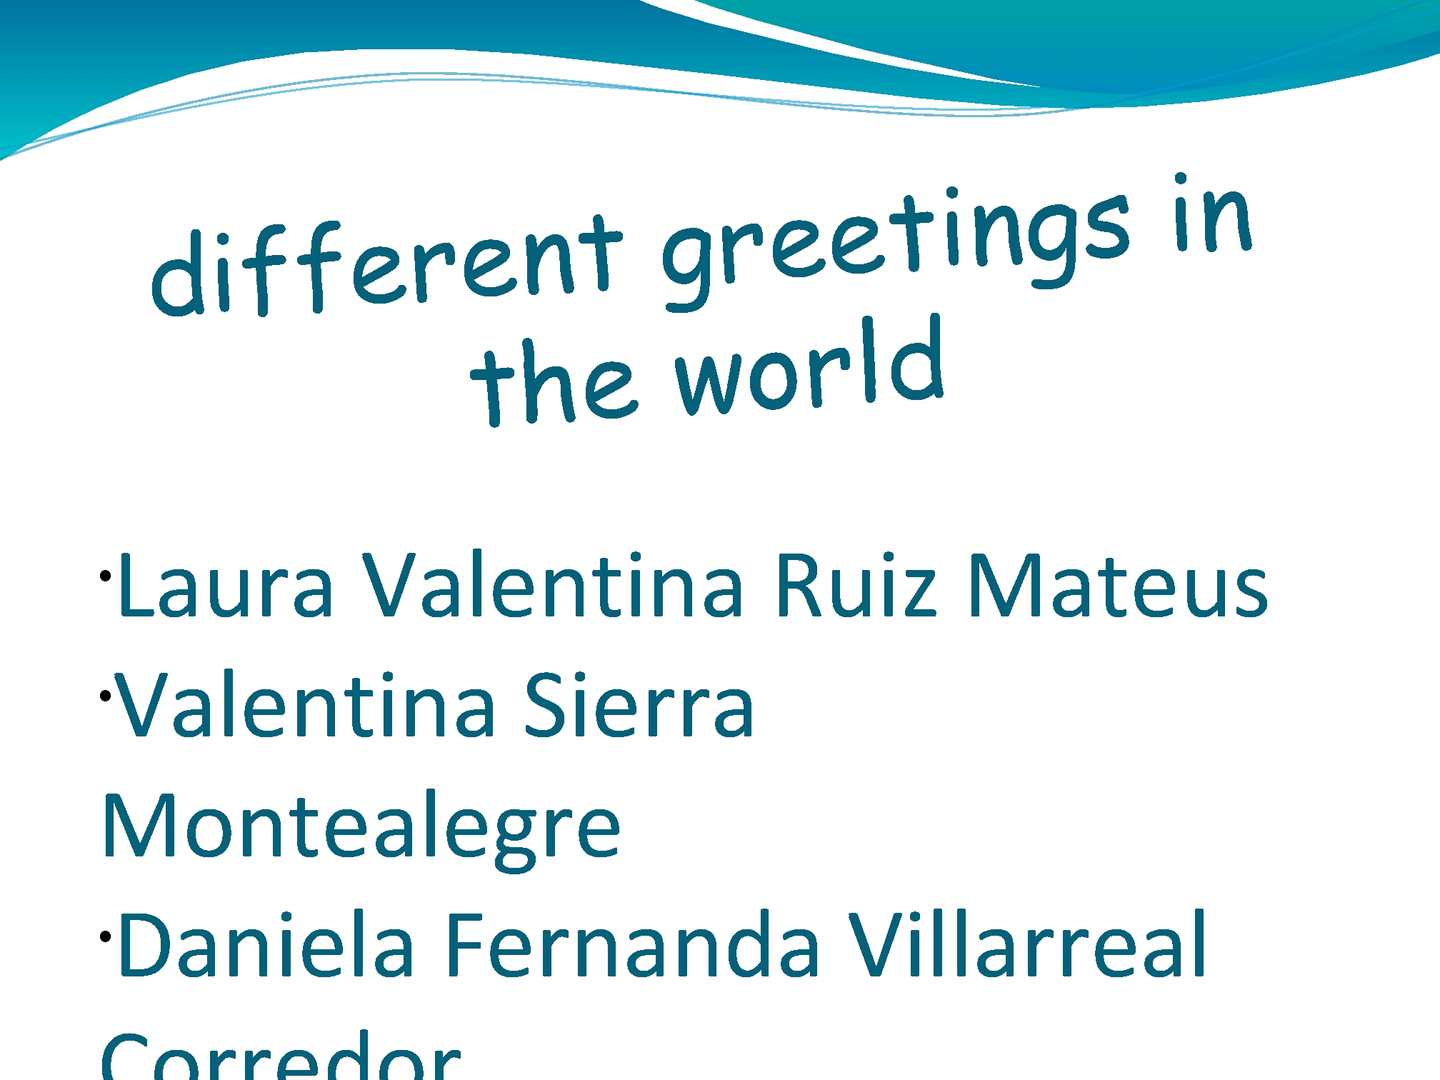 Calamo different greetings in the world kristyandbryce Gallery